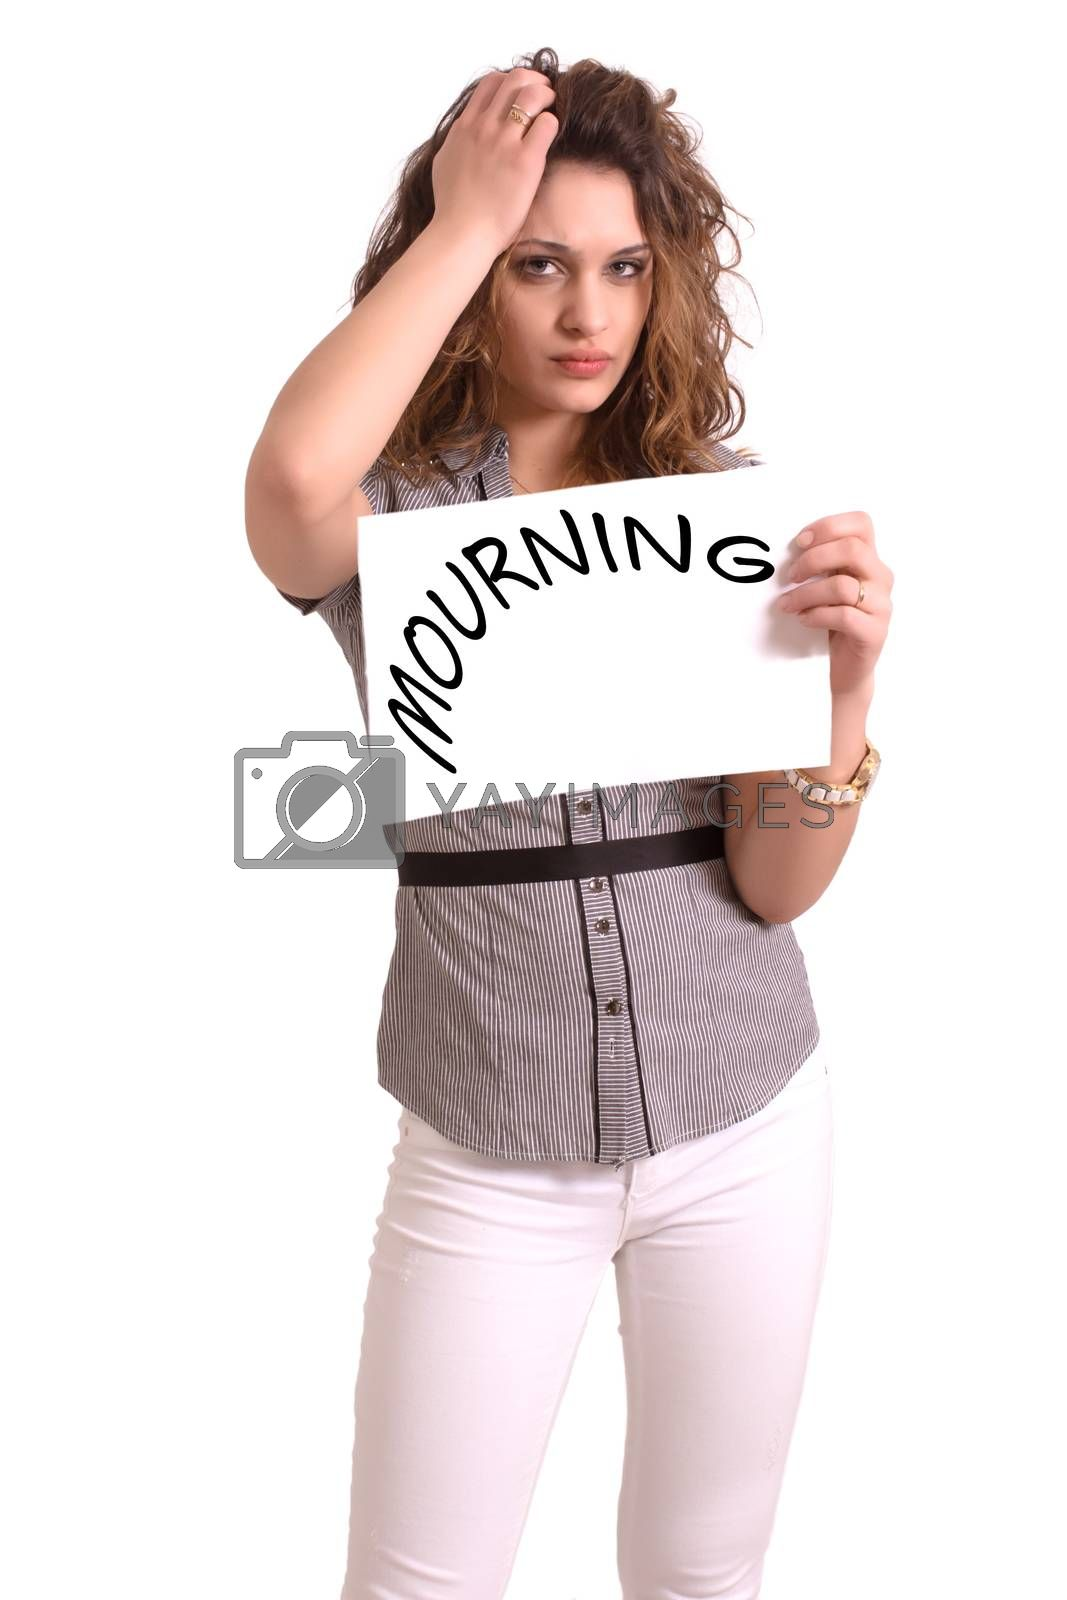 Royalty free image of uncomfortable woman holding paper with Mourning text by vepar5